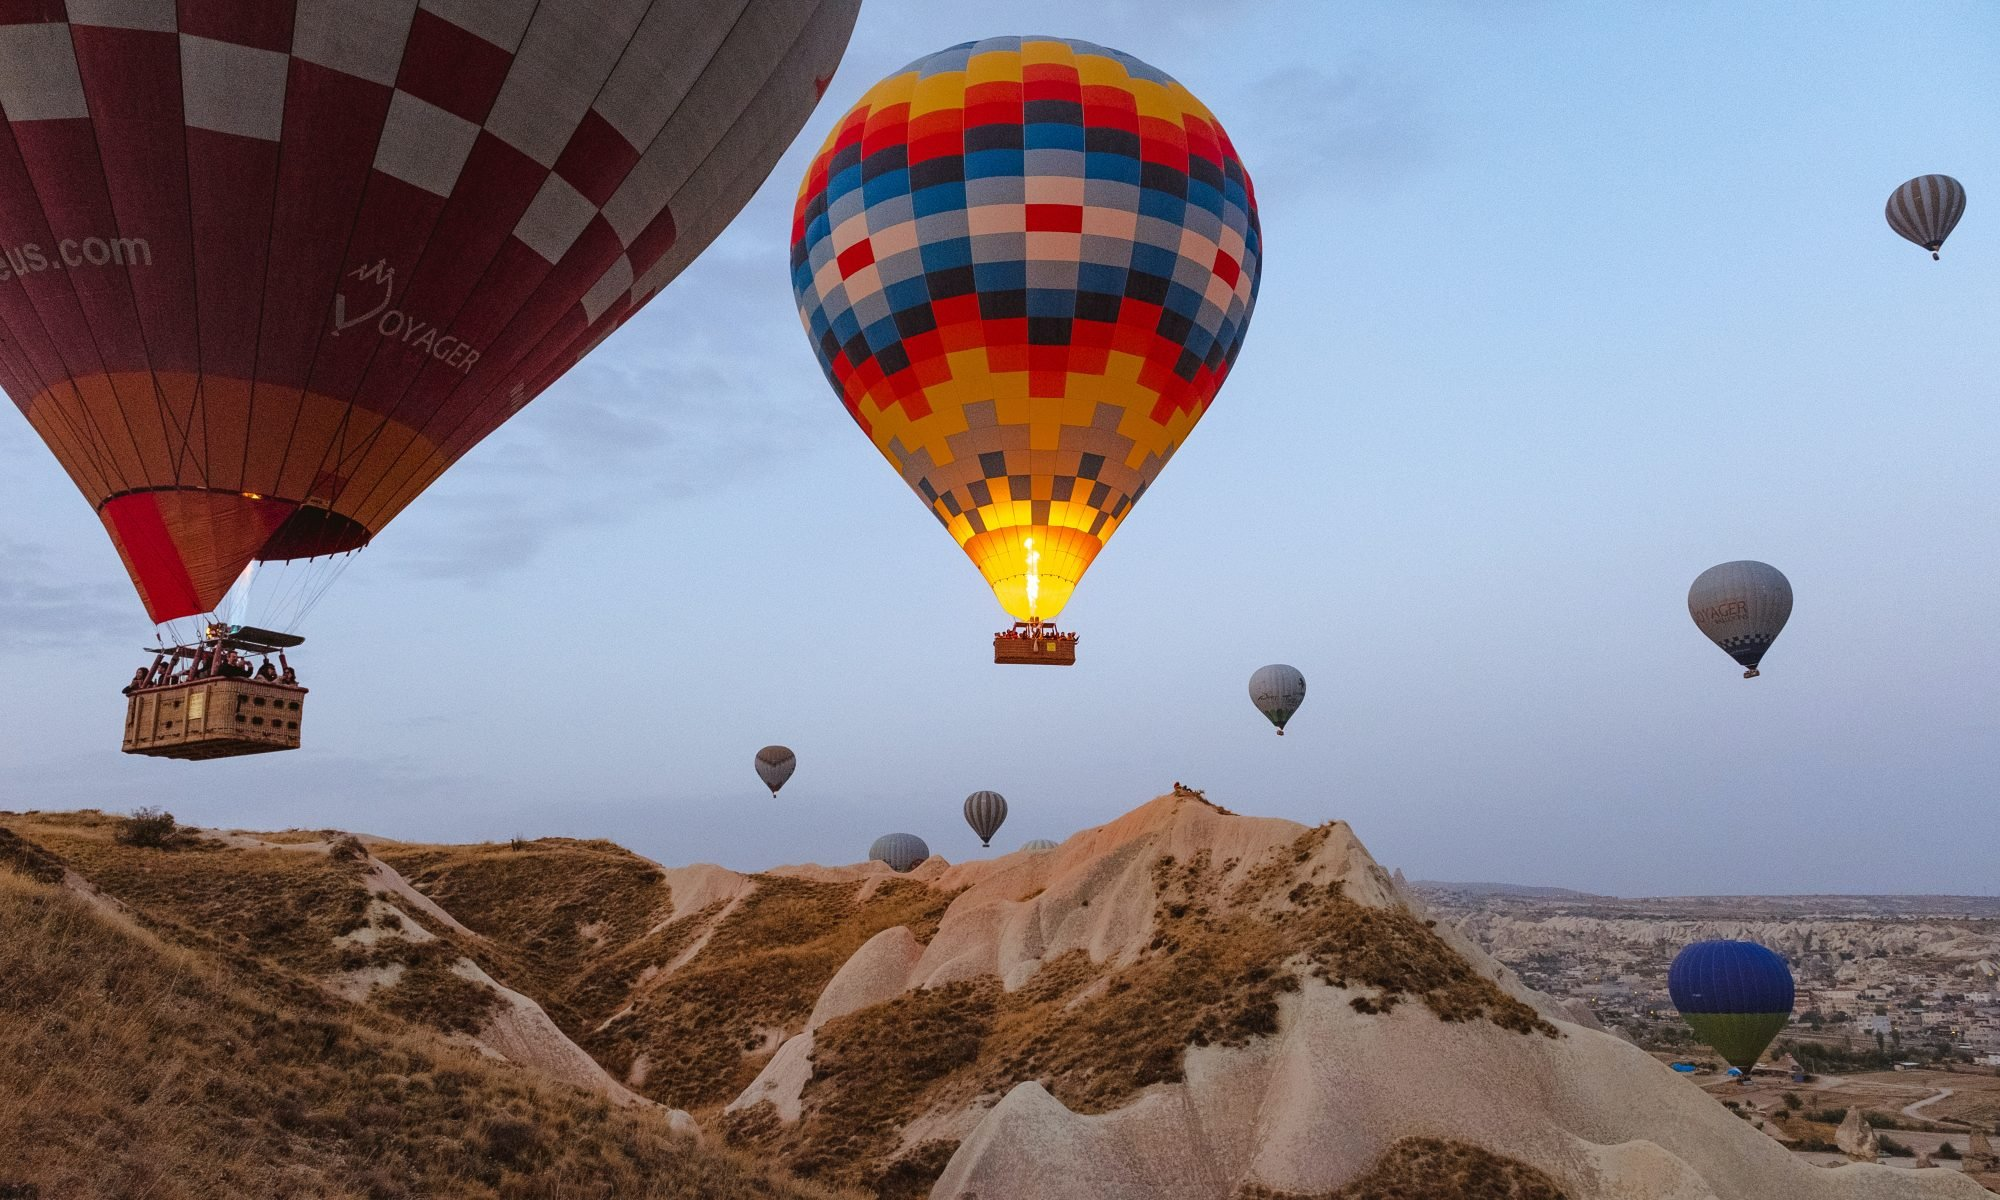 Content marketing is like a hot air balloon